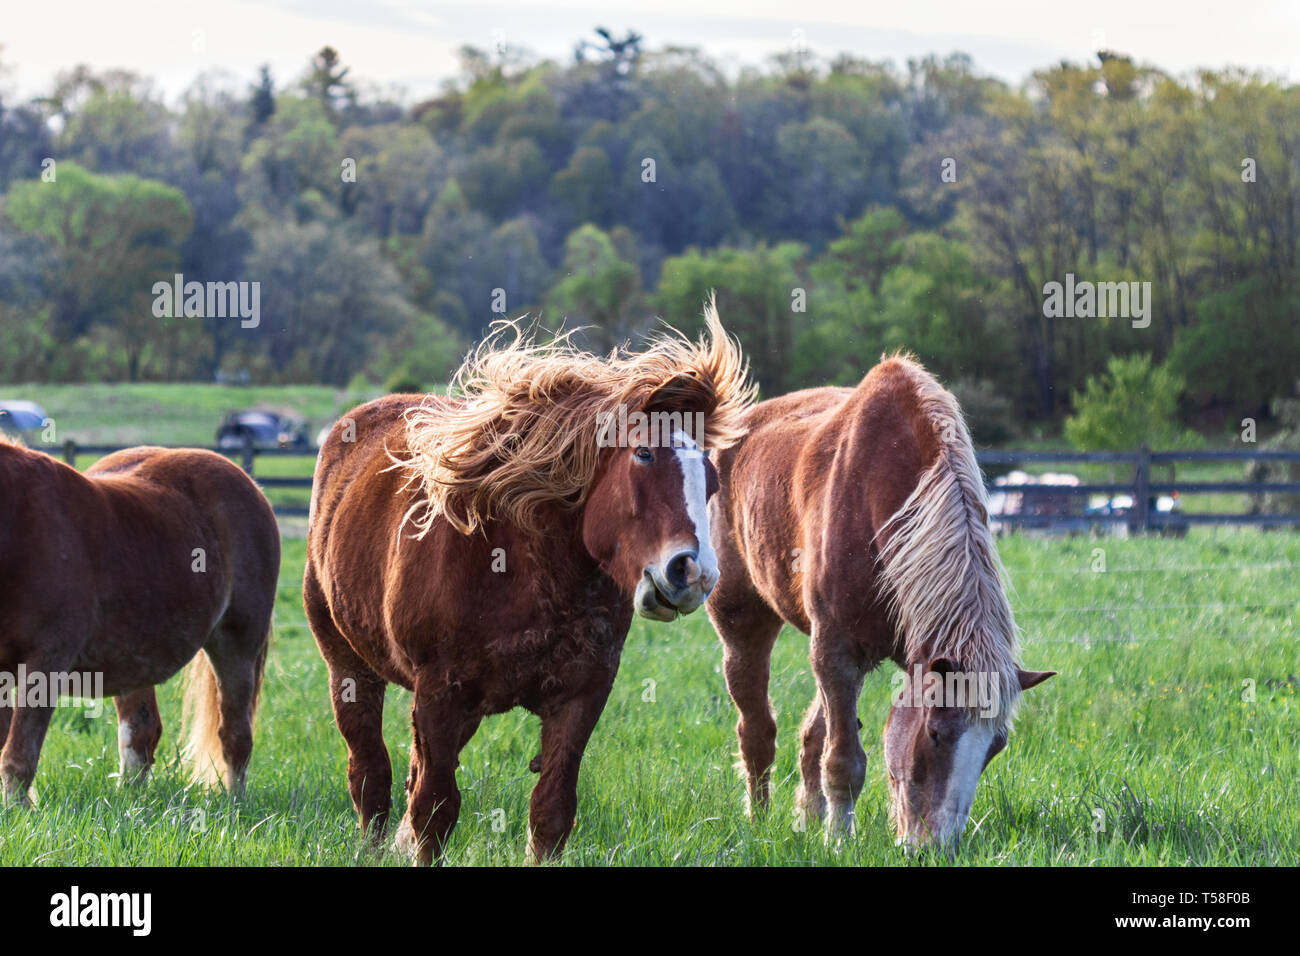 A Belgian draft horse (Equus Feus caballus) has its mane tossled by the wind - Stock Image